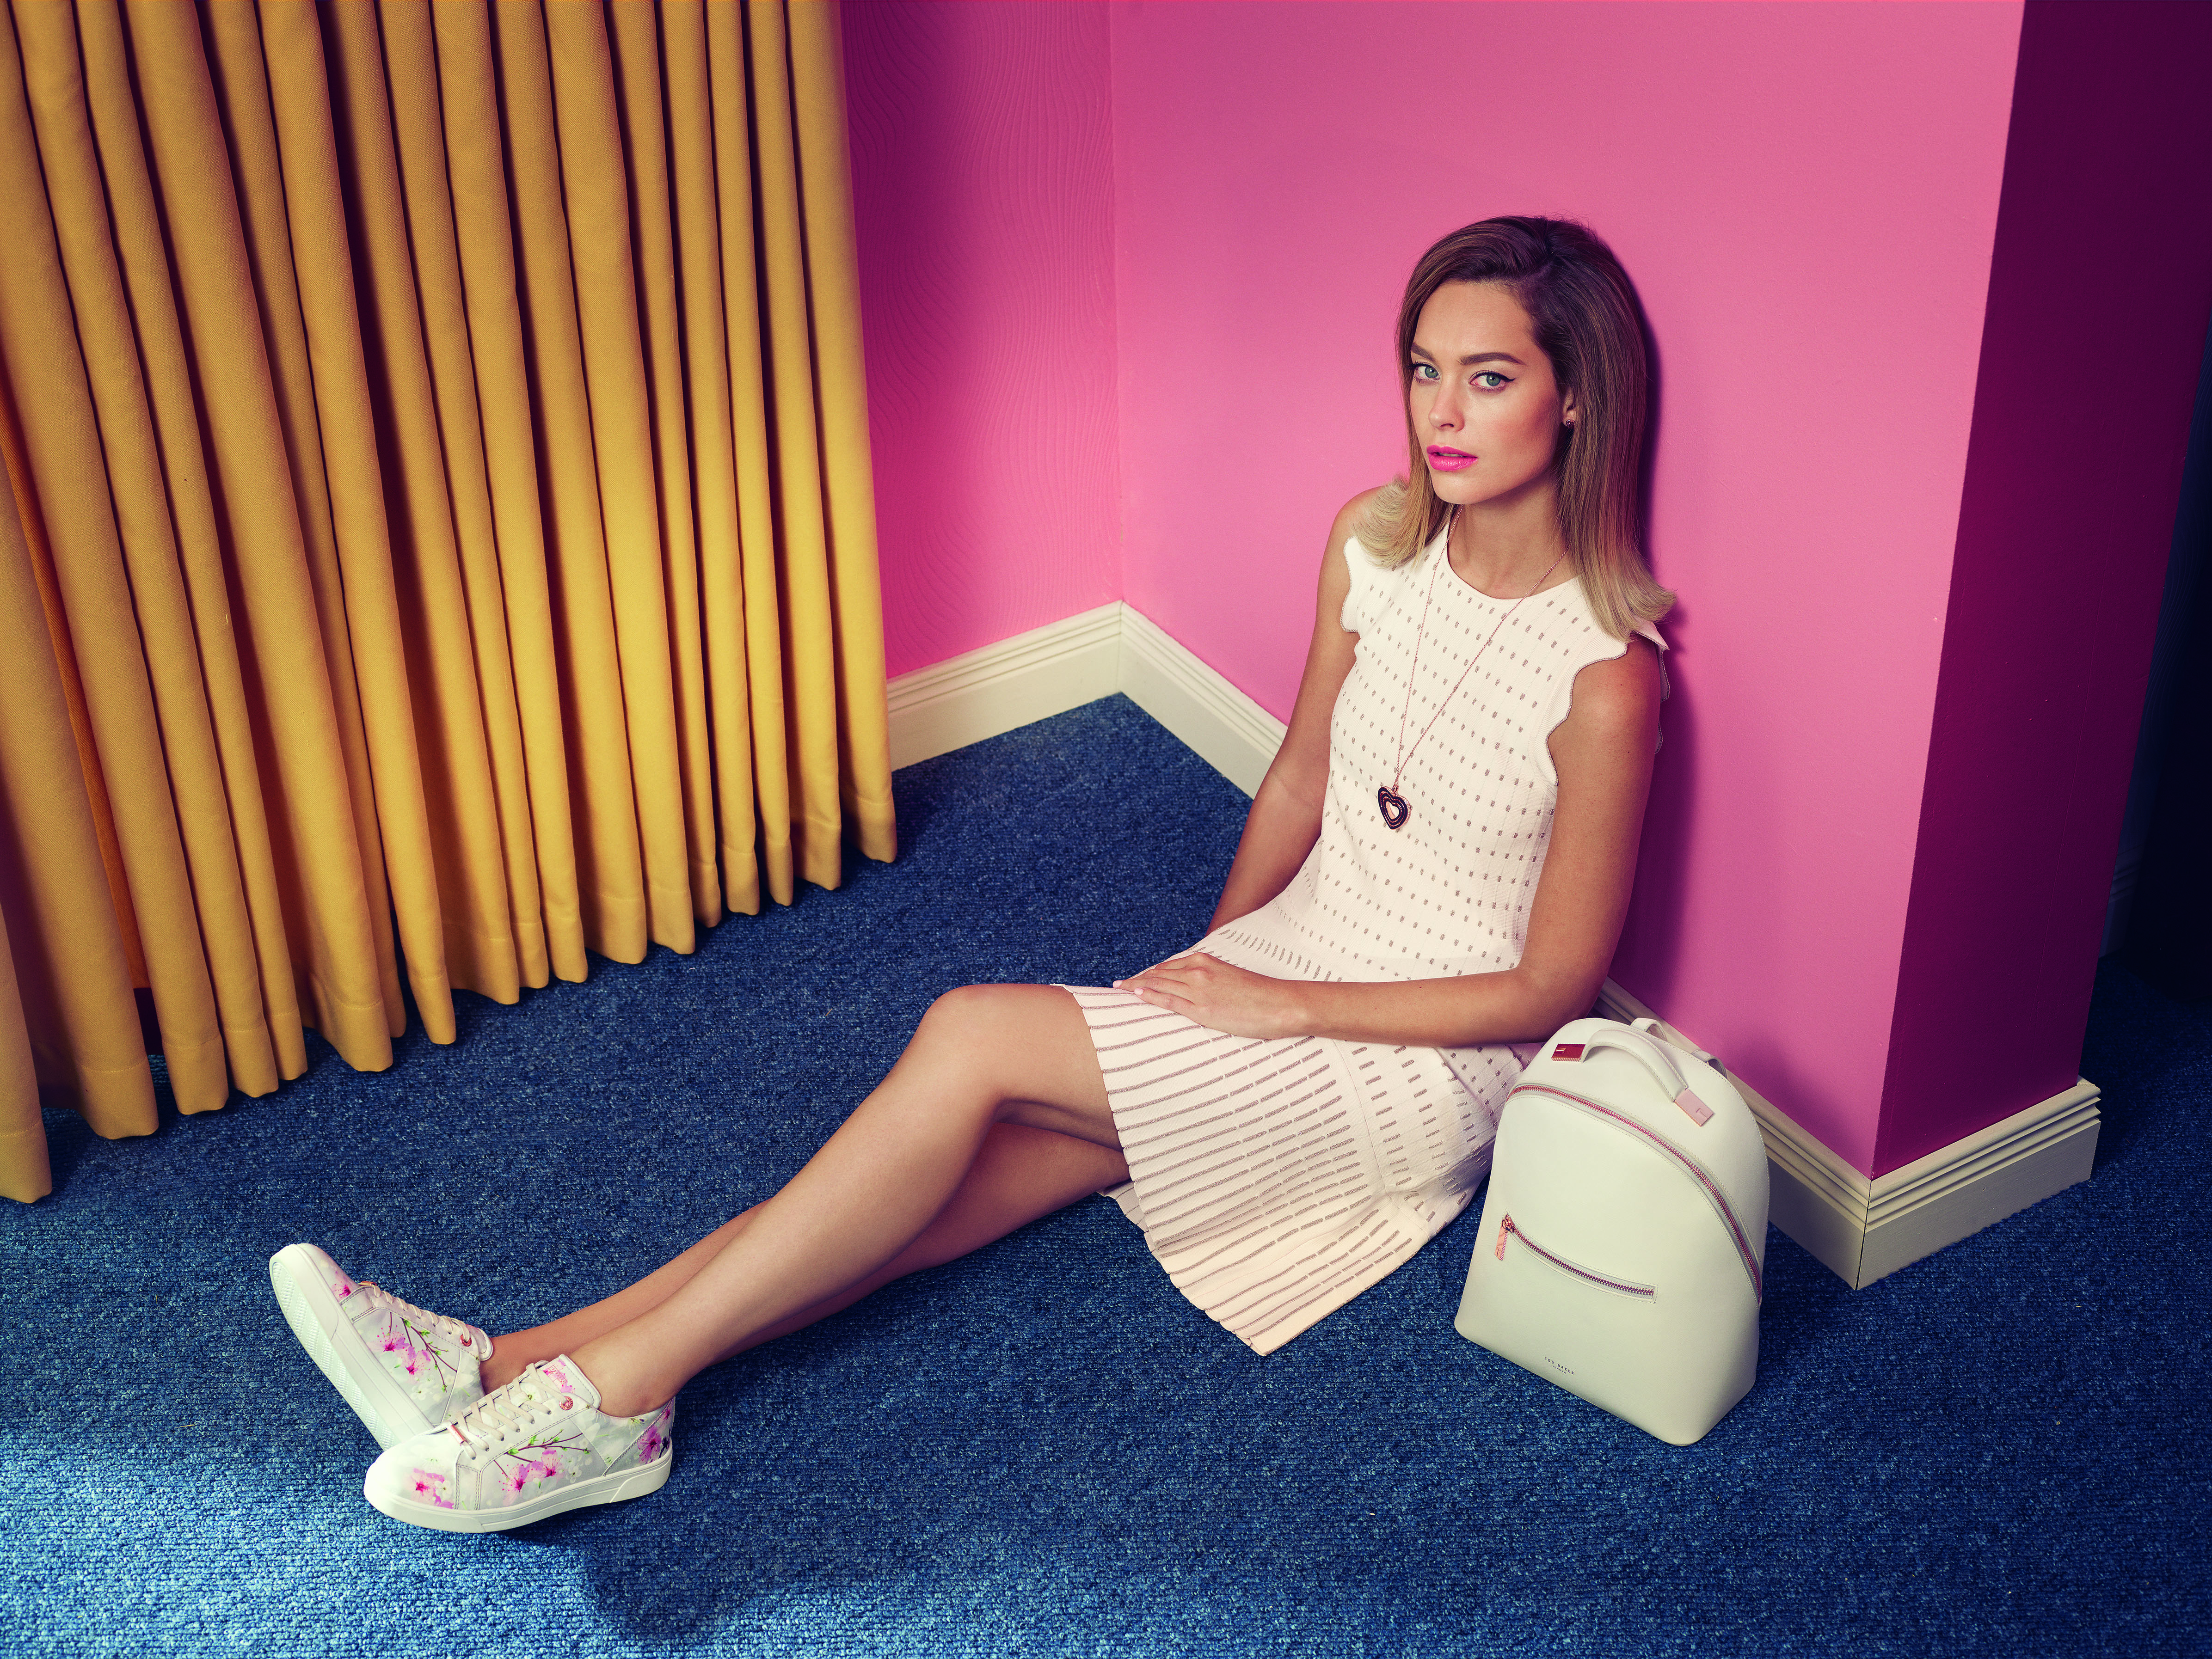 Ted Baker SS 2017 Ad Campaign 7